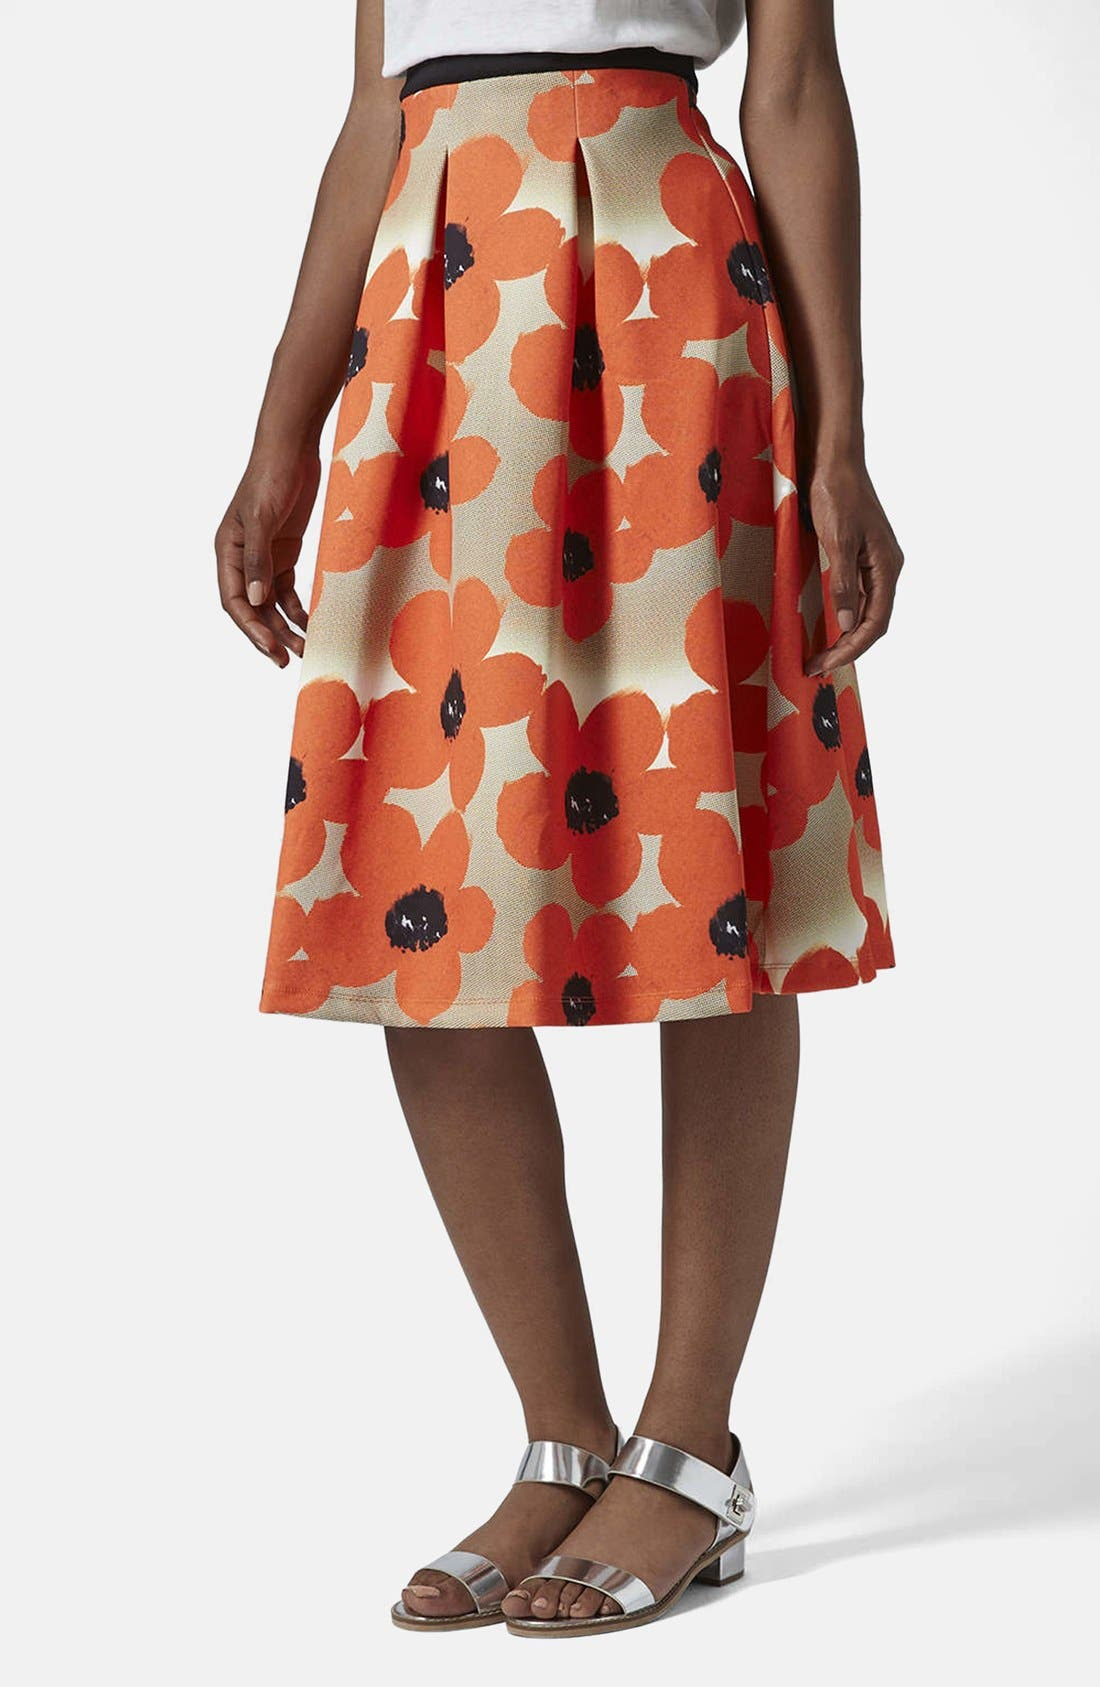 Alternate Image 1 Selected - Topshop 'Sunscratch' Floral Print Scuba Midi Skirt